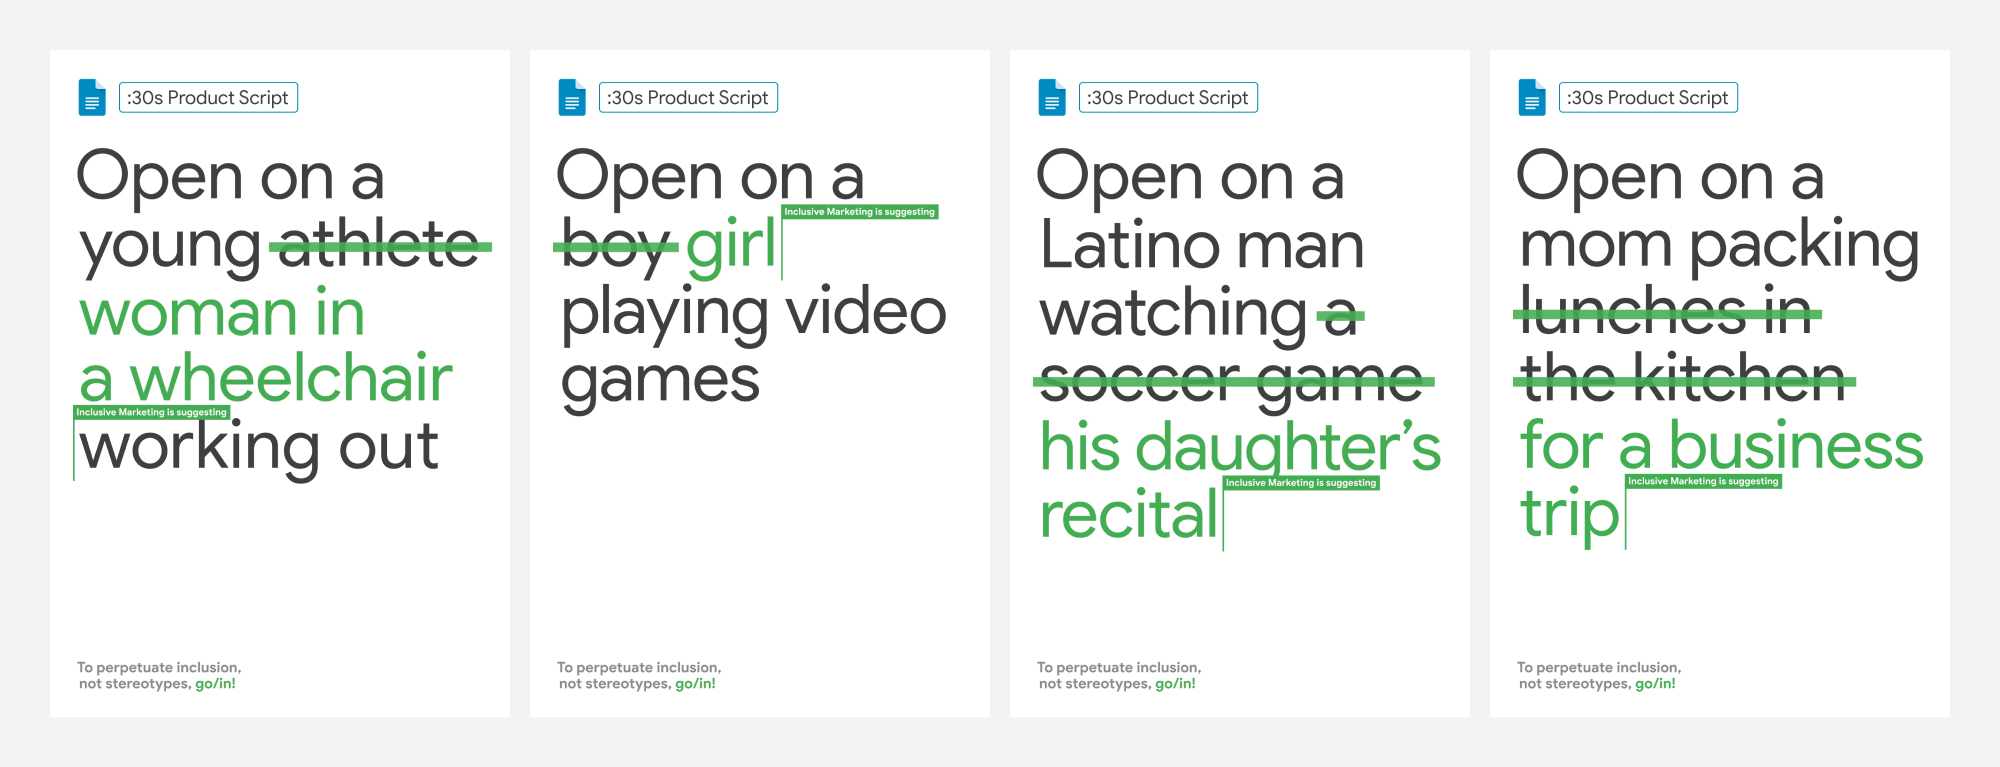 A series of revised scripts that flip sterotypes: Open on a woman in a wheelchair working out. Open on a girl playing video games. Open on a Latino man watching his daughter's recital. Open on a mom packing for a business trip.